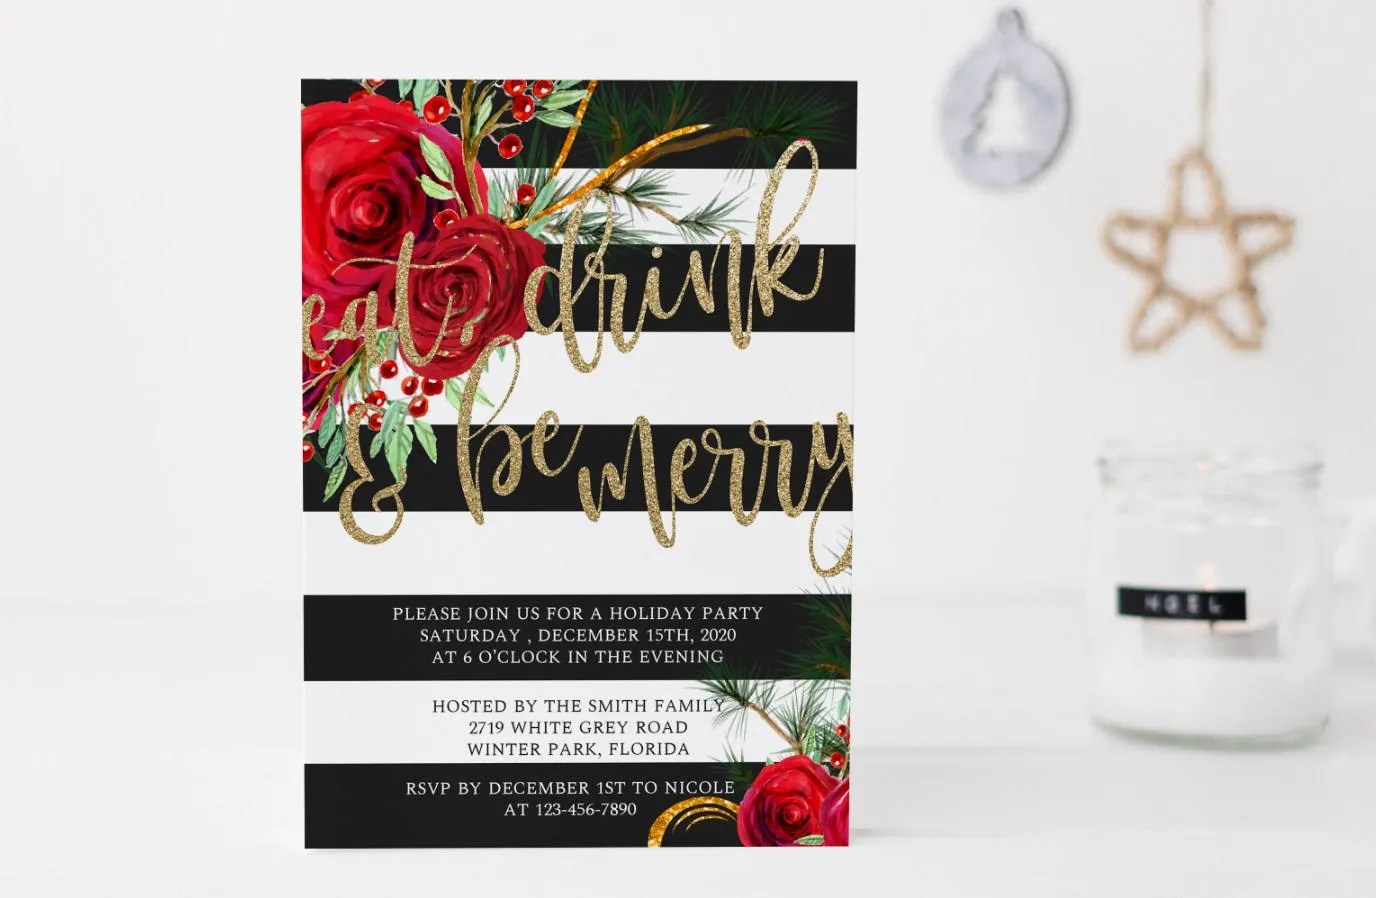 Eat Drink and be Merry Invitation, Christmas Dinner Invitation